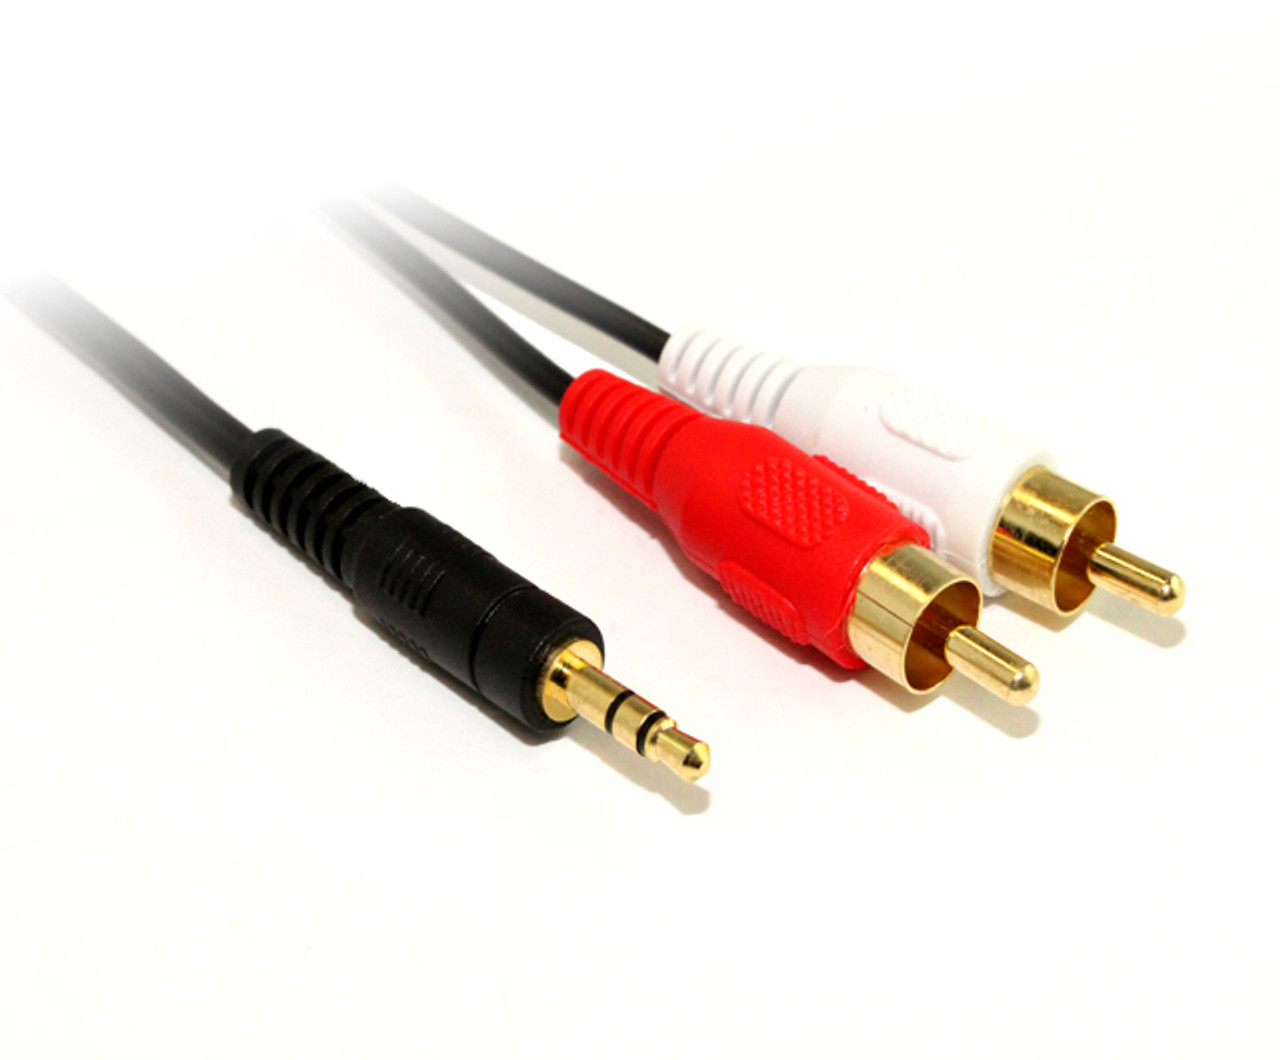 Product image for 2M 3.5MM Plug -2 X RCA Plug Cable | CX Computer Superstore